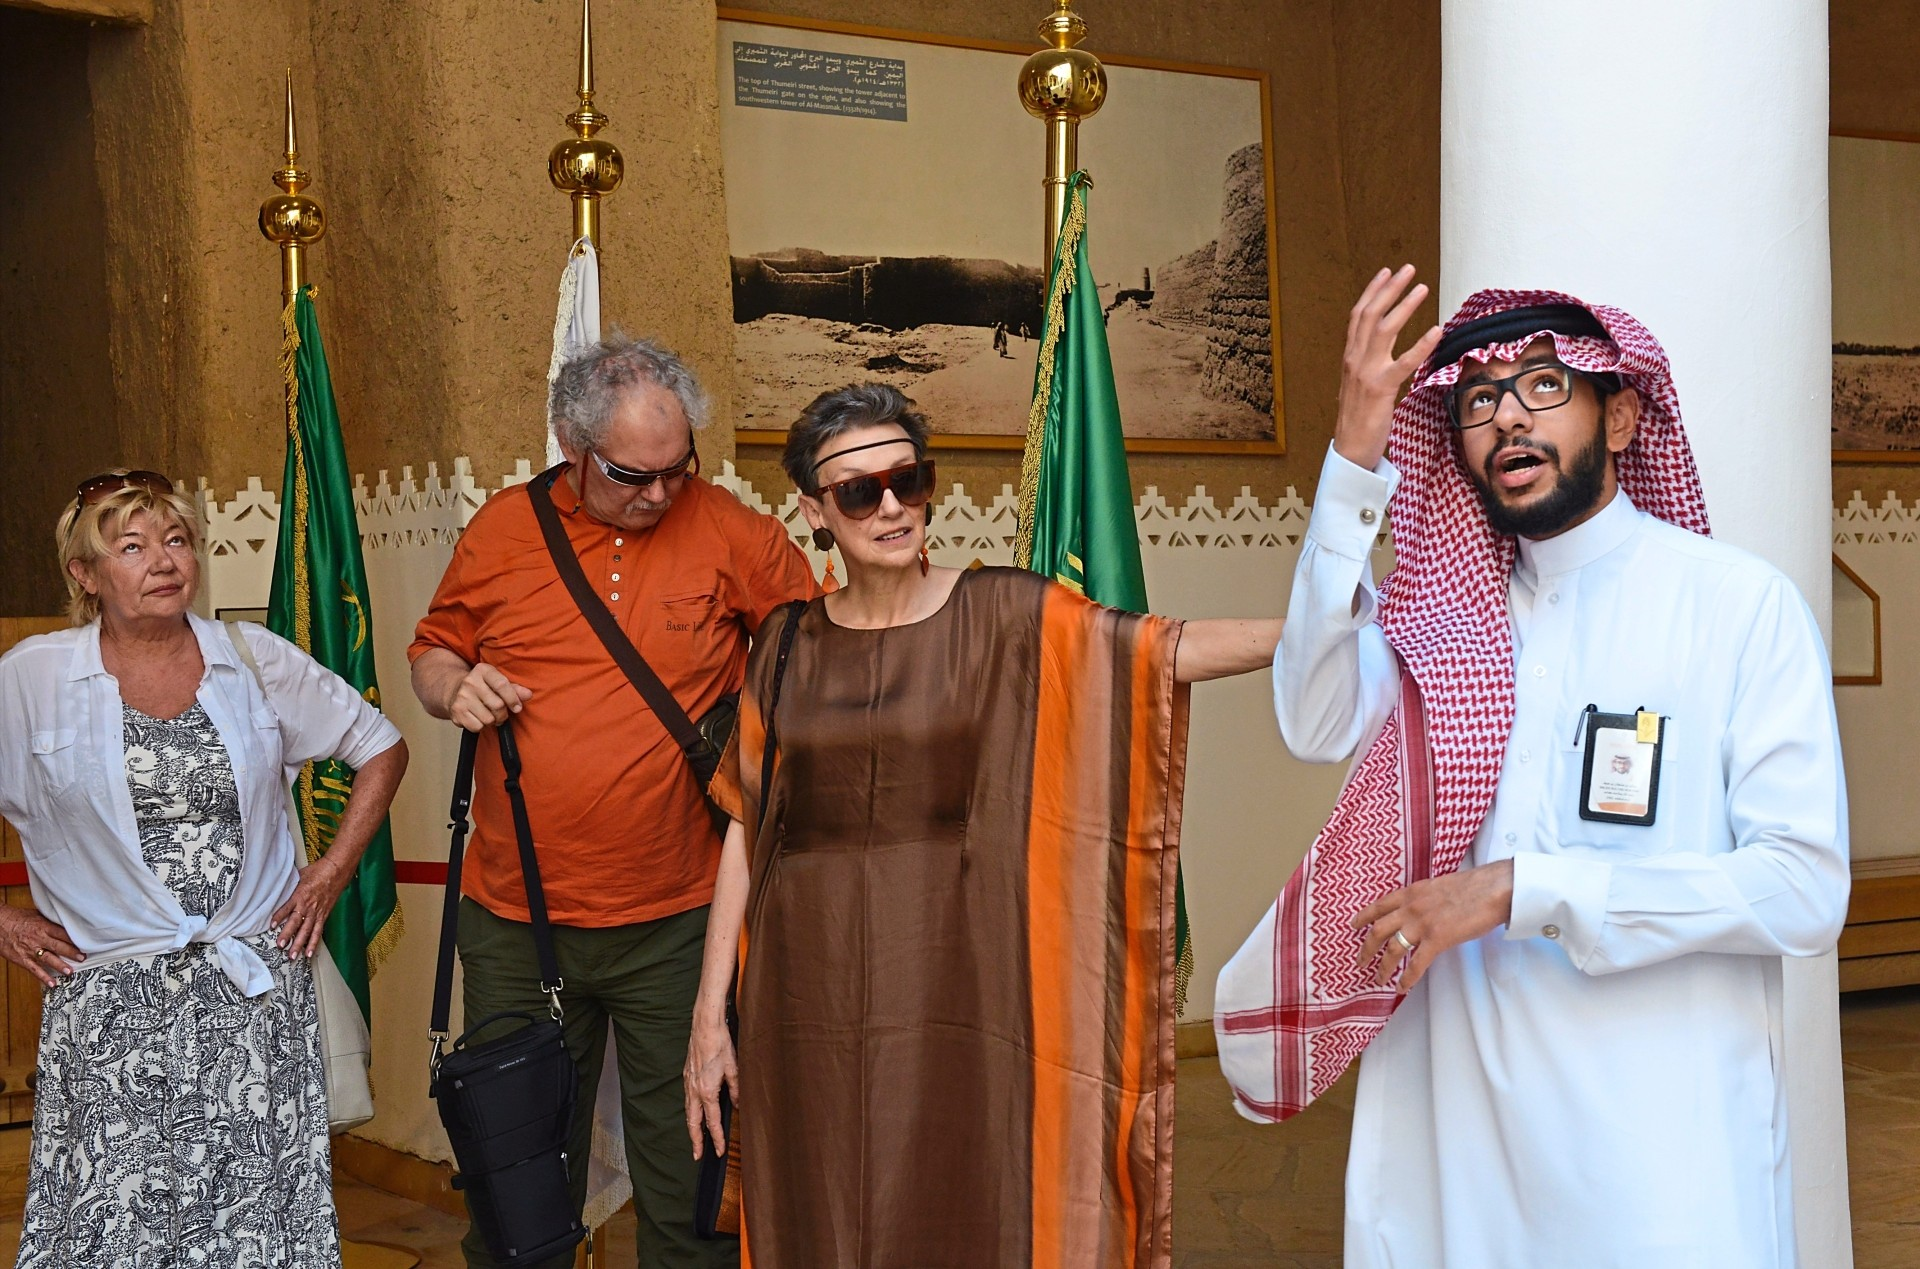 A Saudi tour guide taking some tourists around Riyadh. In September, Saudi Arabia relaxed its visa rules to allow more visitors into the kingdom. — AFP Relaxnews